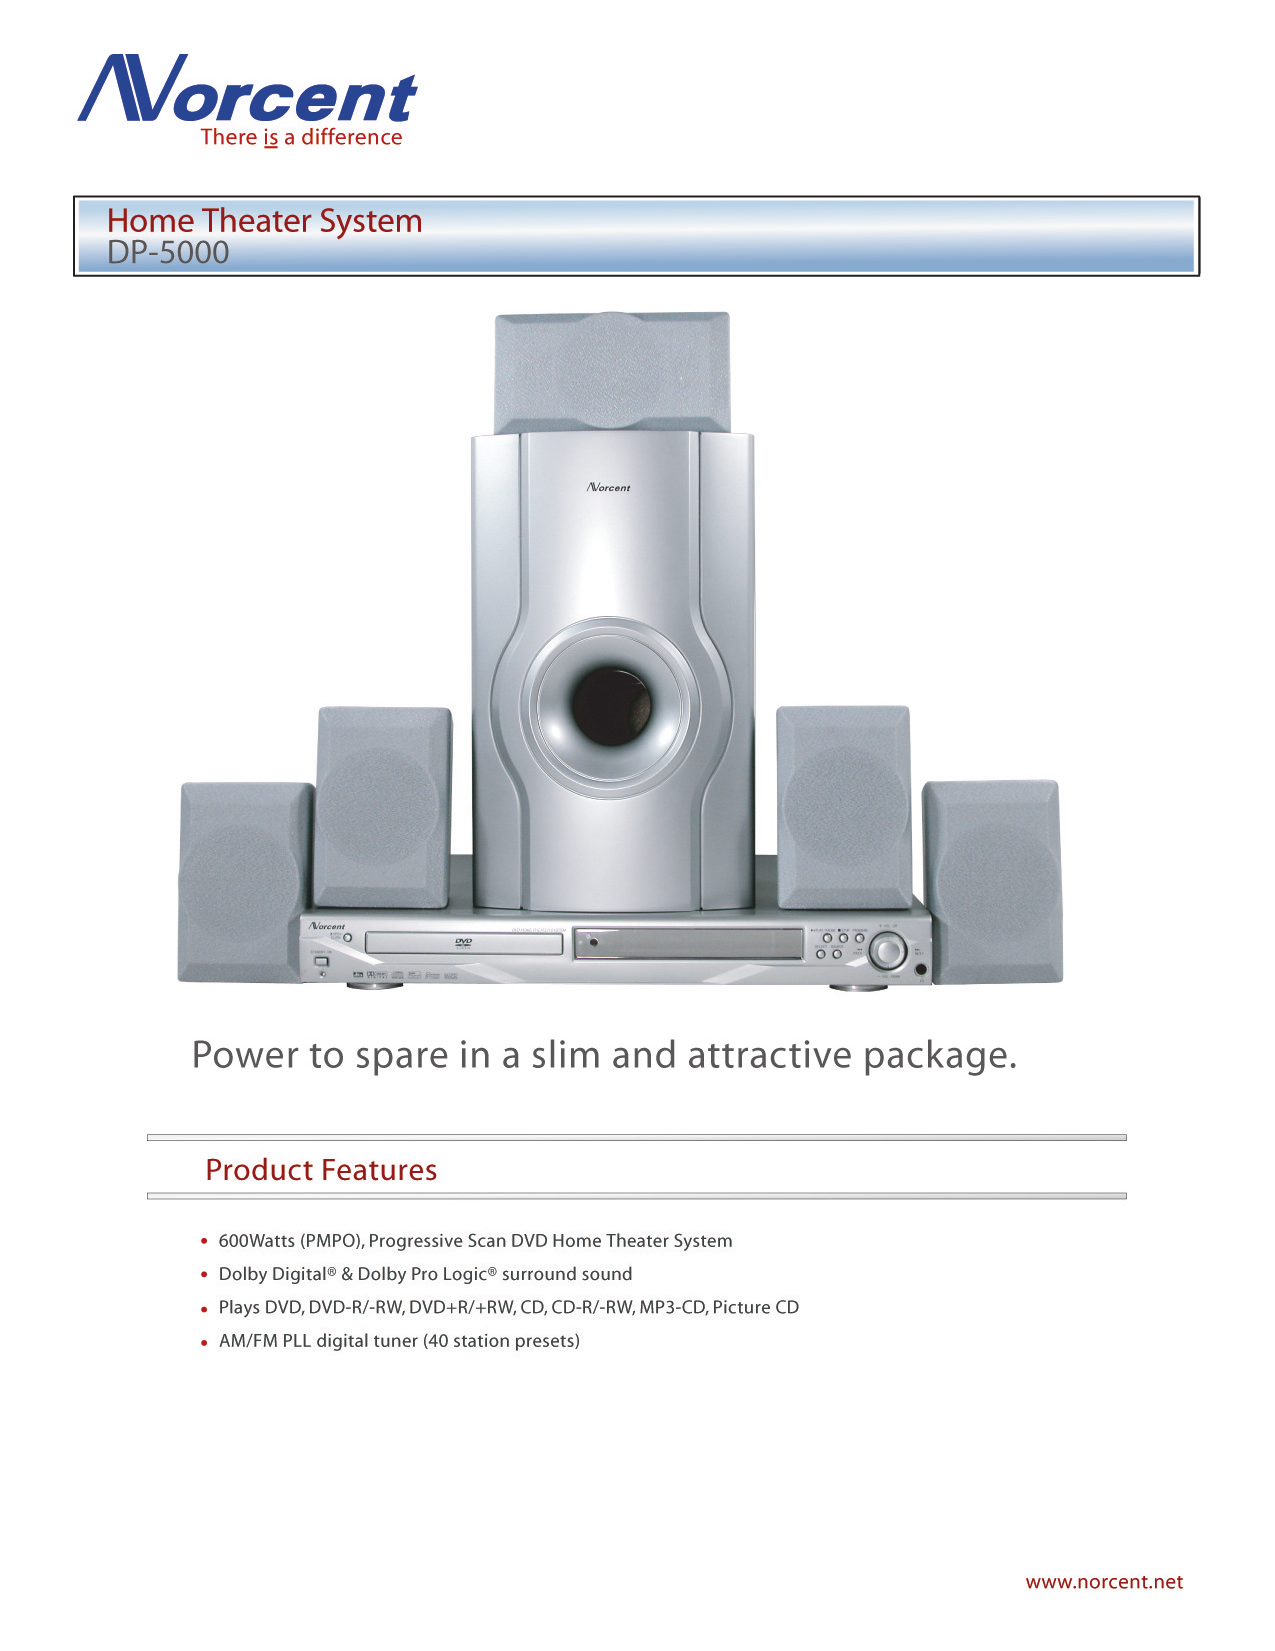 pdf for Norcent Home Theater DP5000 manual